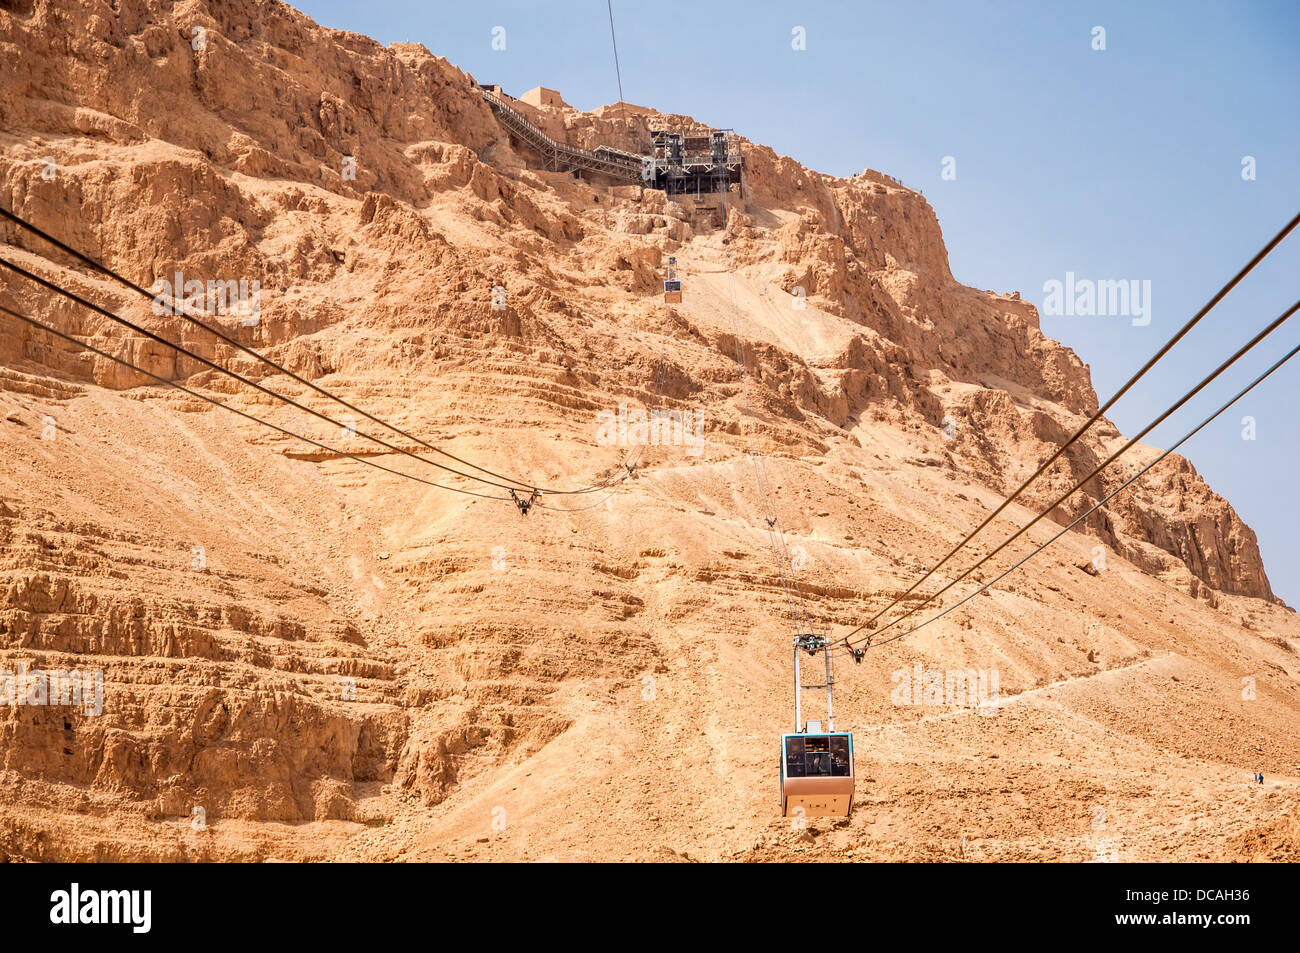 Tranpost to the top of Massada hill by the Cable Car. Judea Desert, Israel. Holy Land. Stock Photo